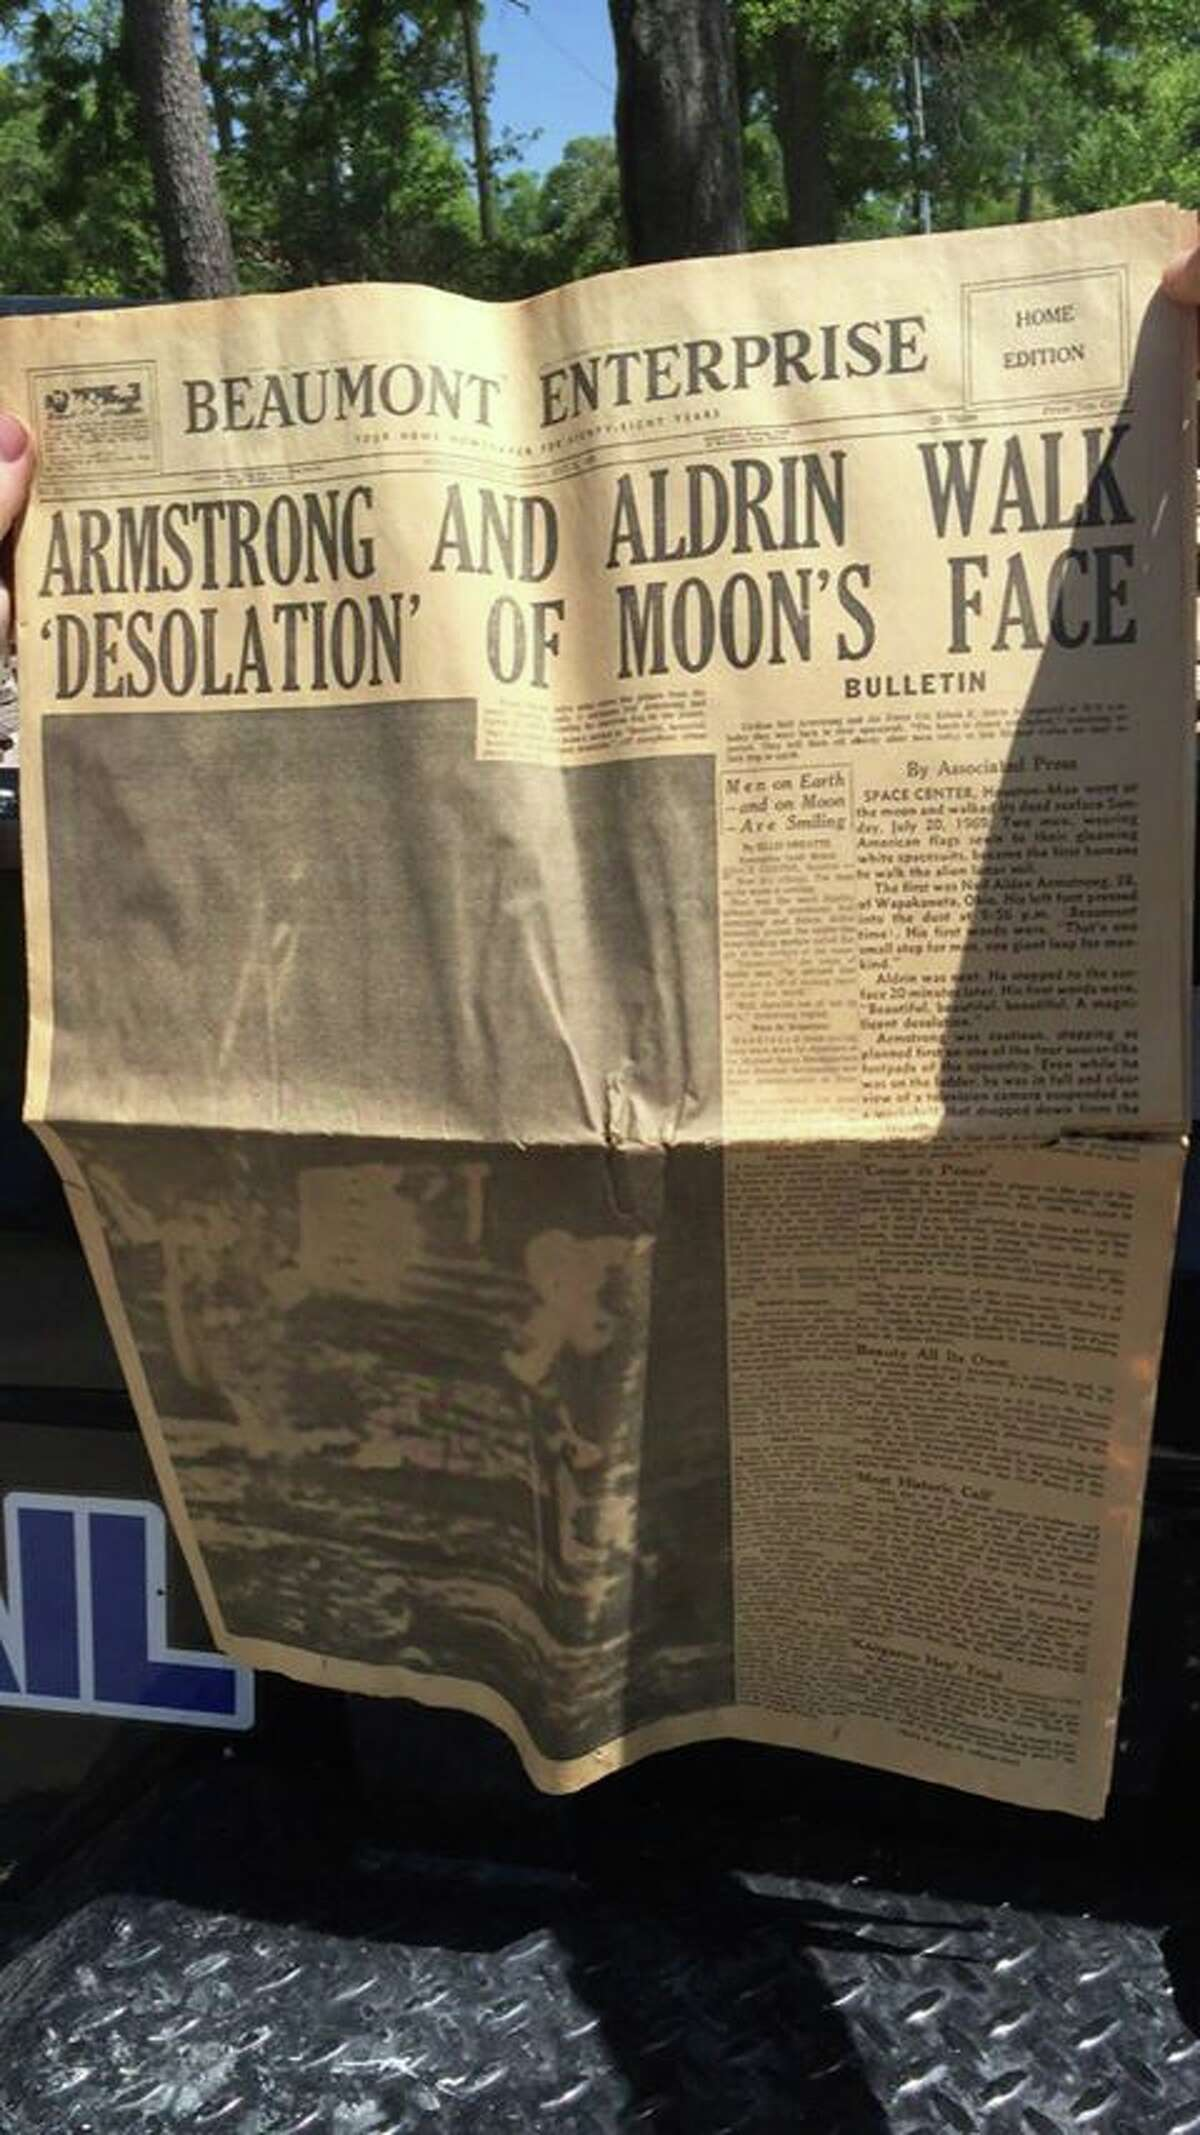 Dustyn Myatt, of Kirbyville, holds up a copy of the Beaumont Enterprise, dated July 21, 1969, reporting the news of astronauts Neil Armstrong and Edwin